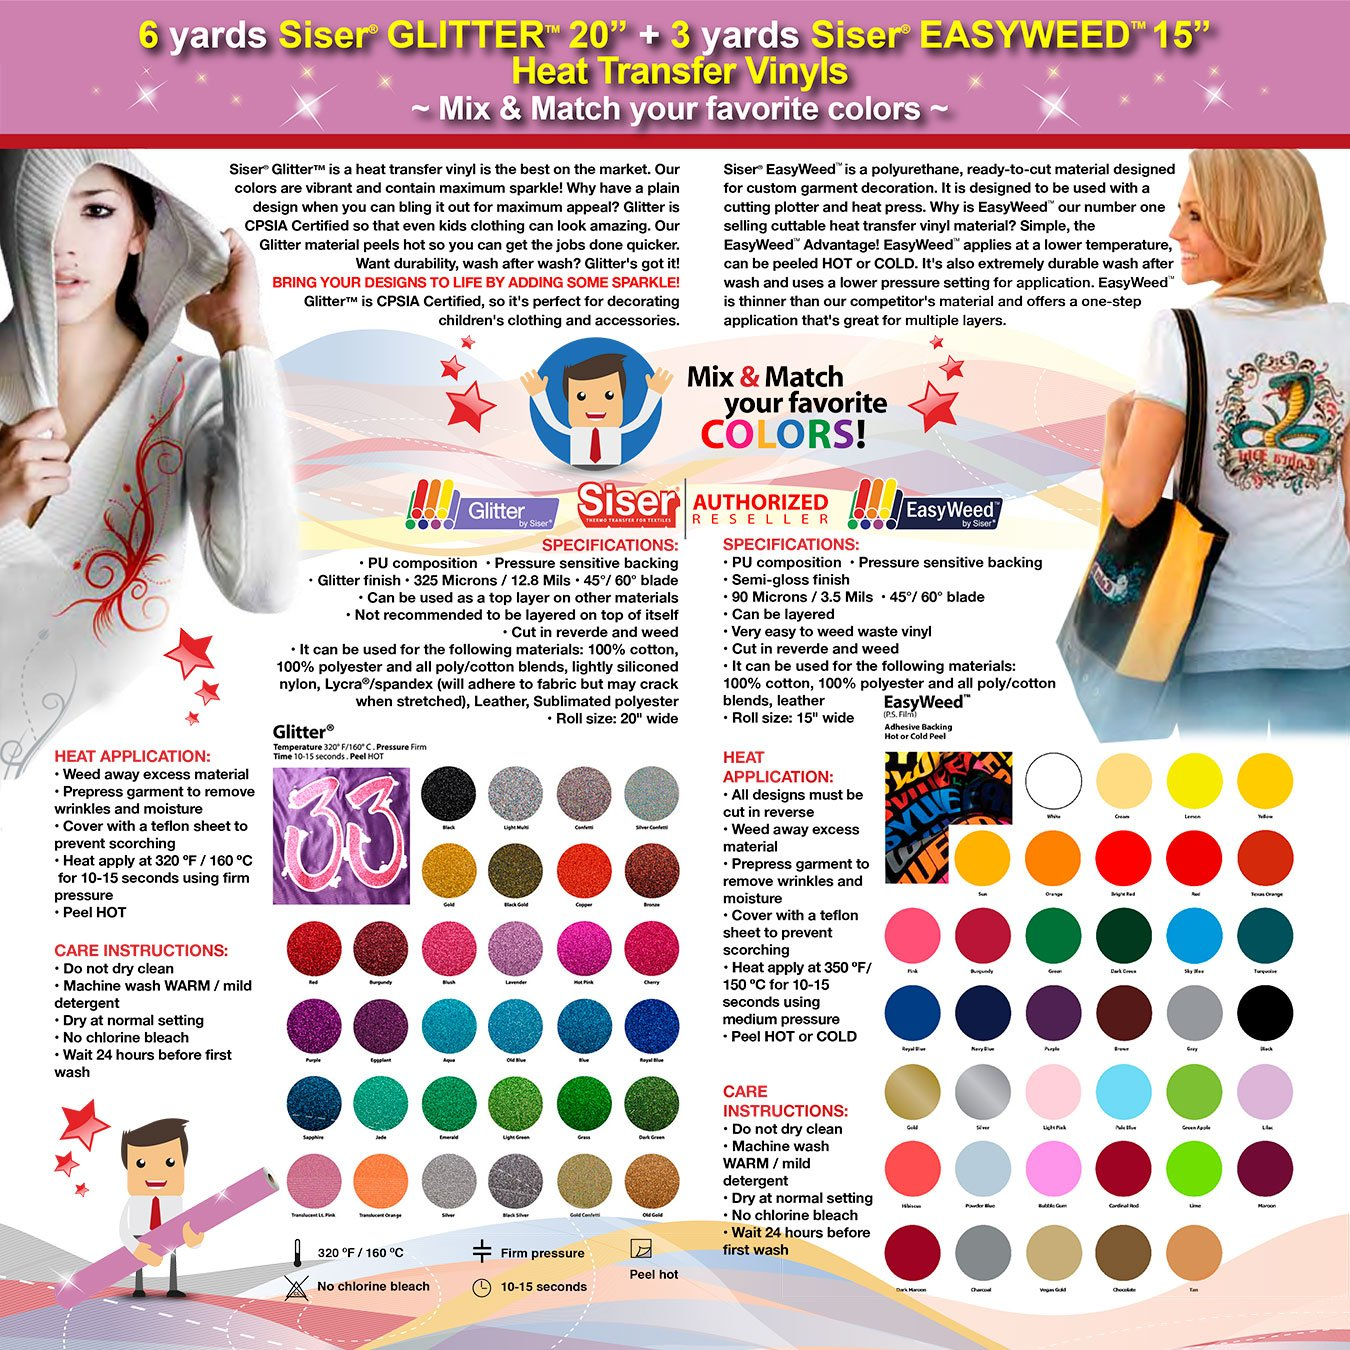 GERCUTTER Store: 6 yards SISER GLITTER + 3 yards SISER EASYWEED Heat Transfer Vinyls on Cotton or Polyester Mesh and Poly-blend Fabrics (Mix & Match your favorite colors) by GERCUTTER USA